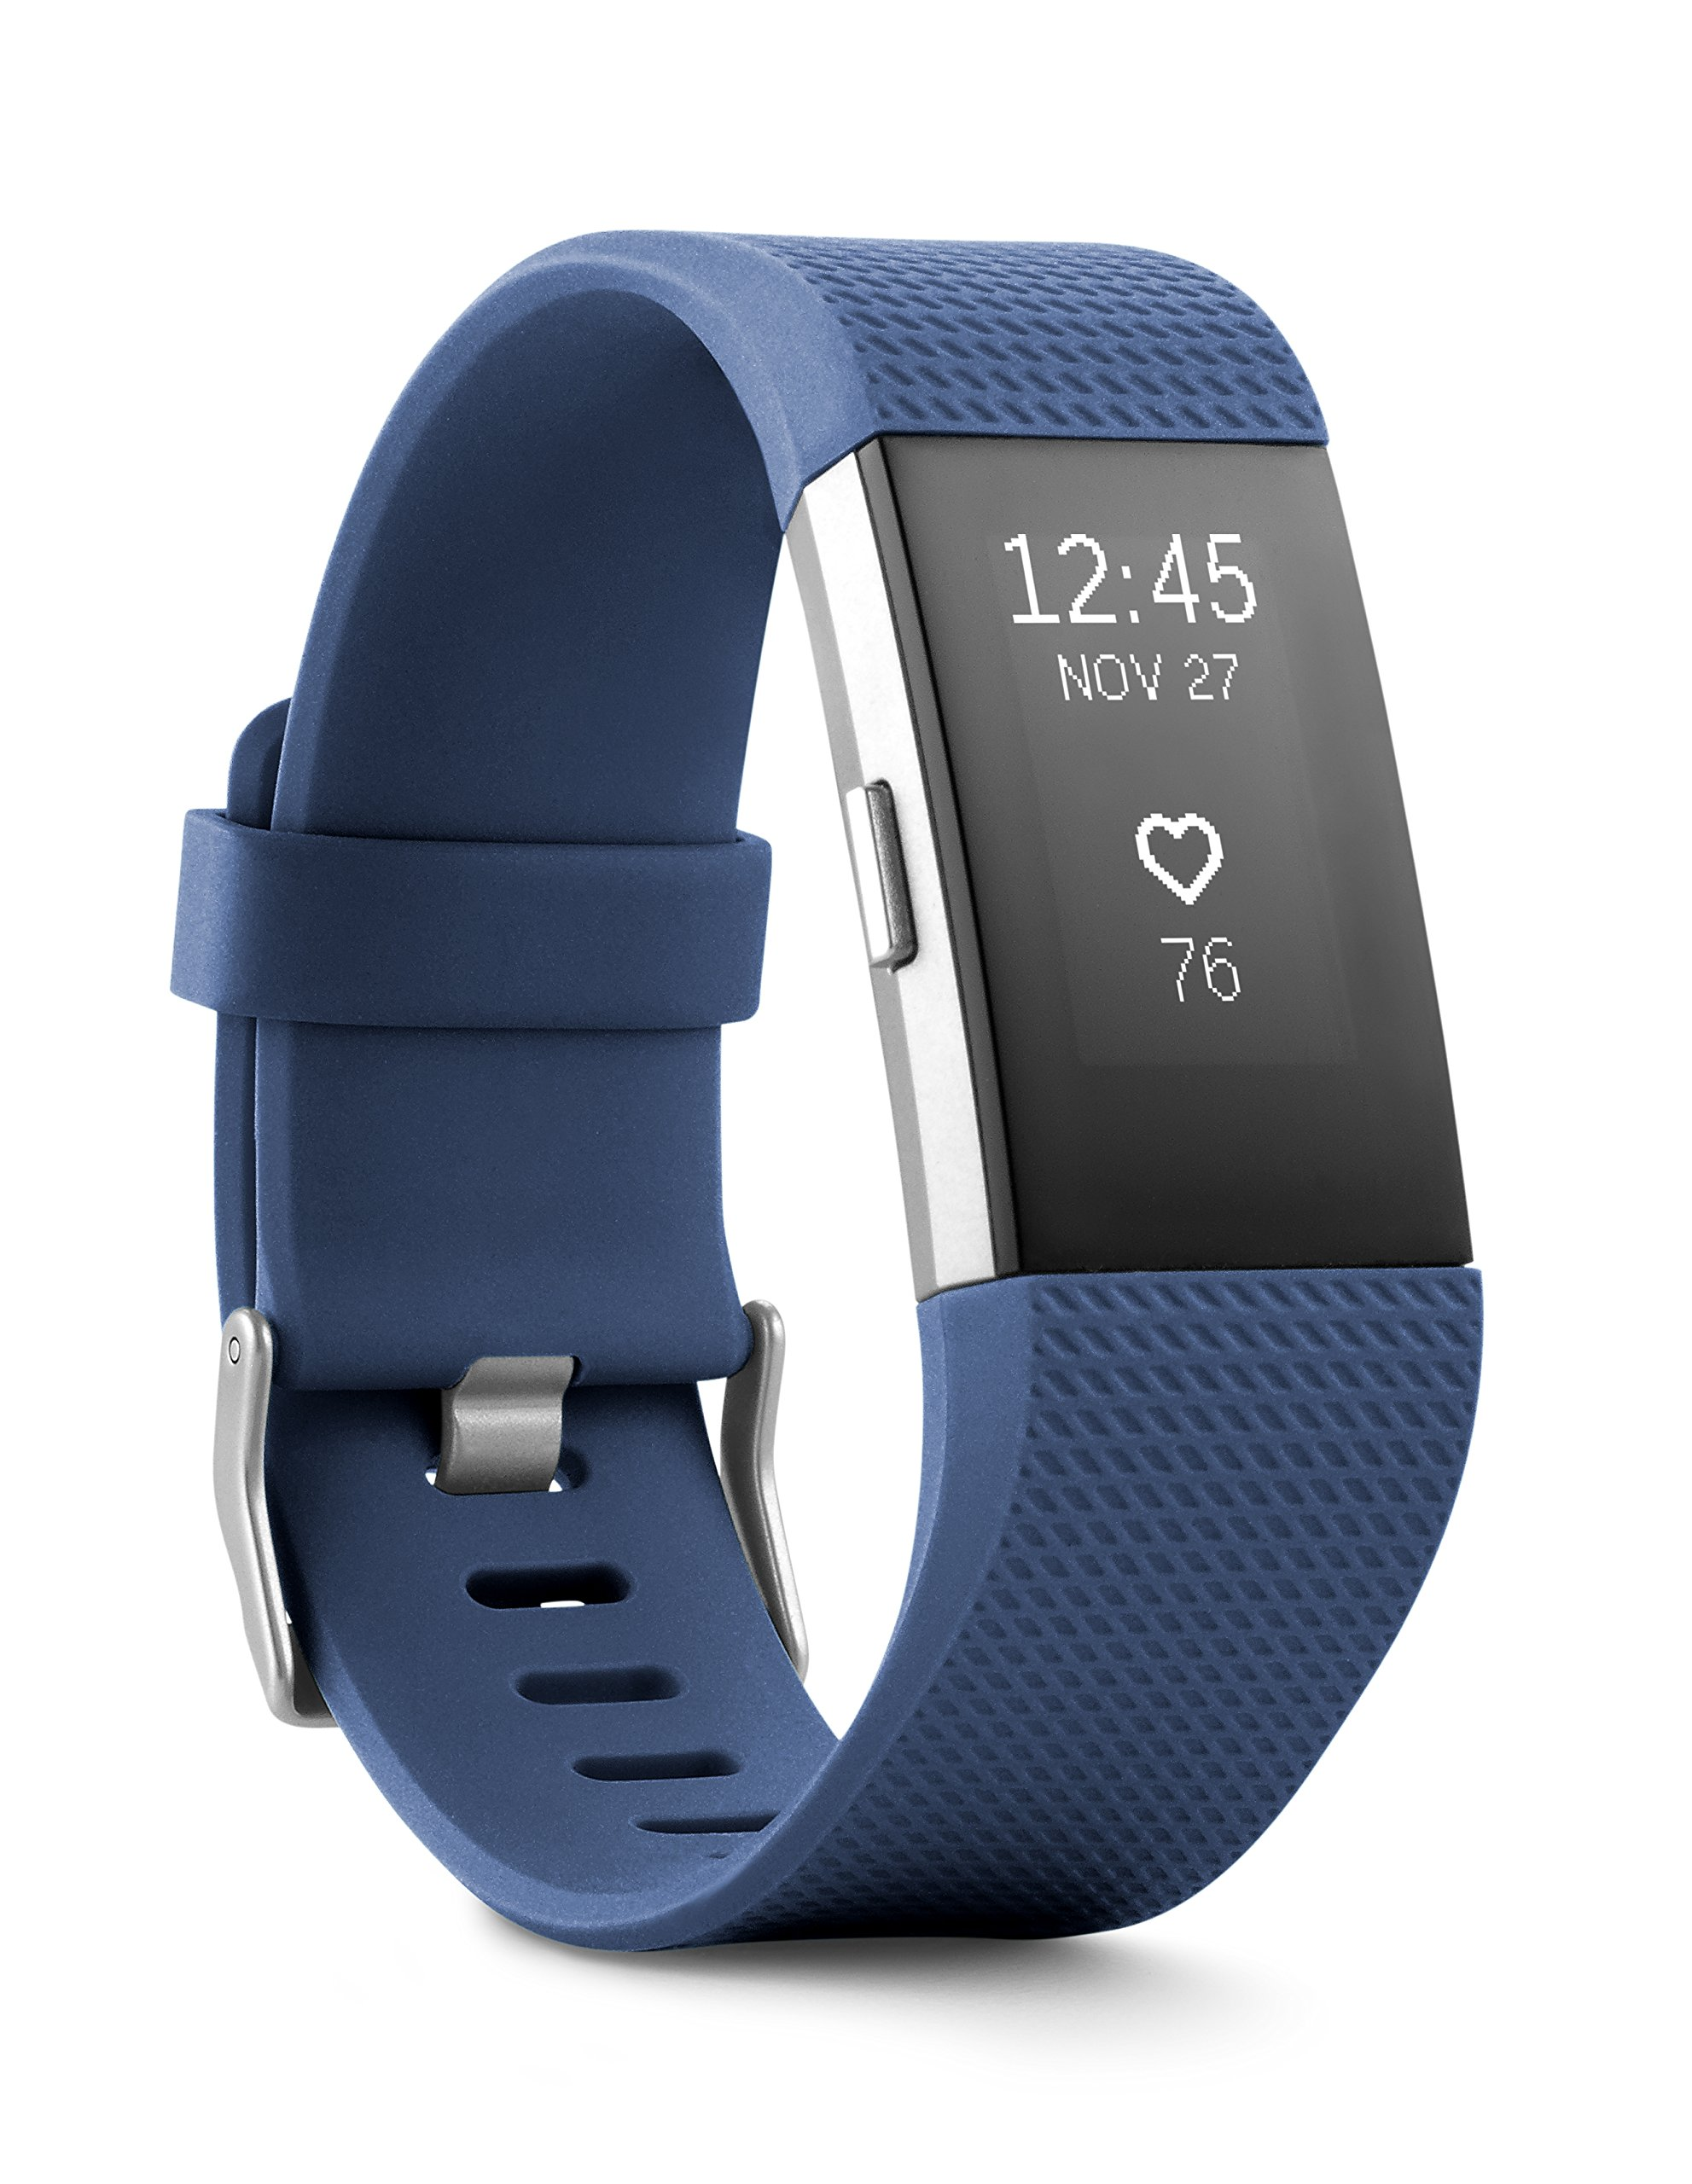 Fitbit Charge 2 Heart Rate + Fitness Wristband, Blue, Large (US Version), 1 Count by Fitbit